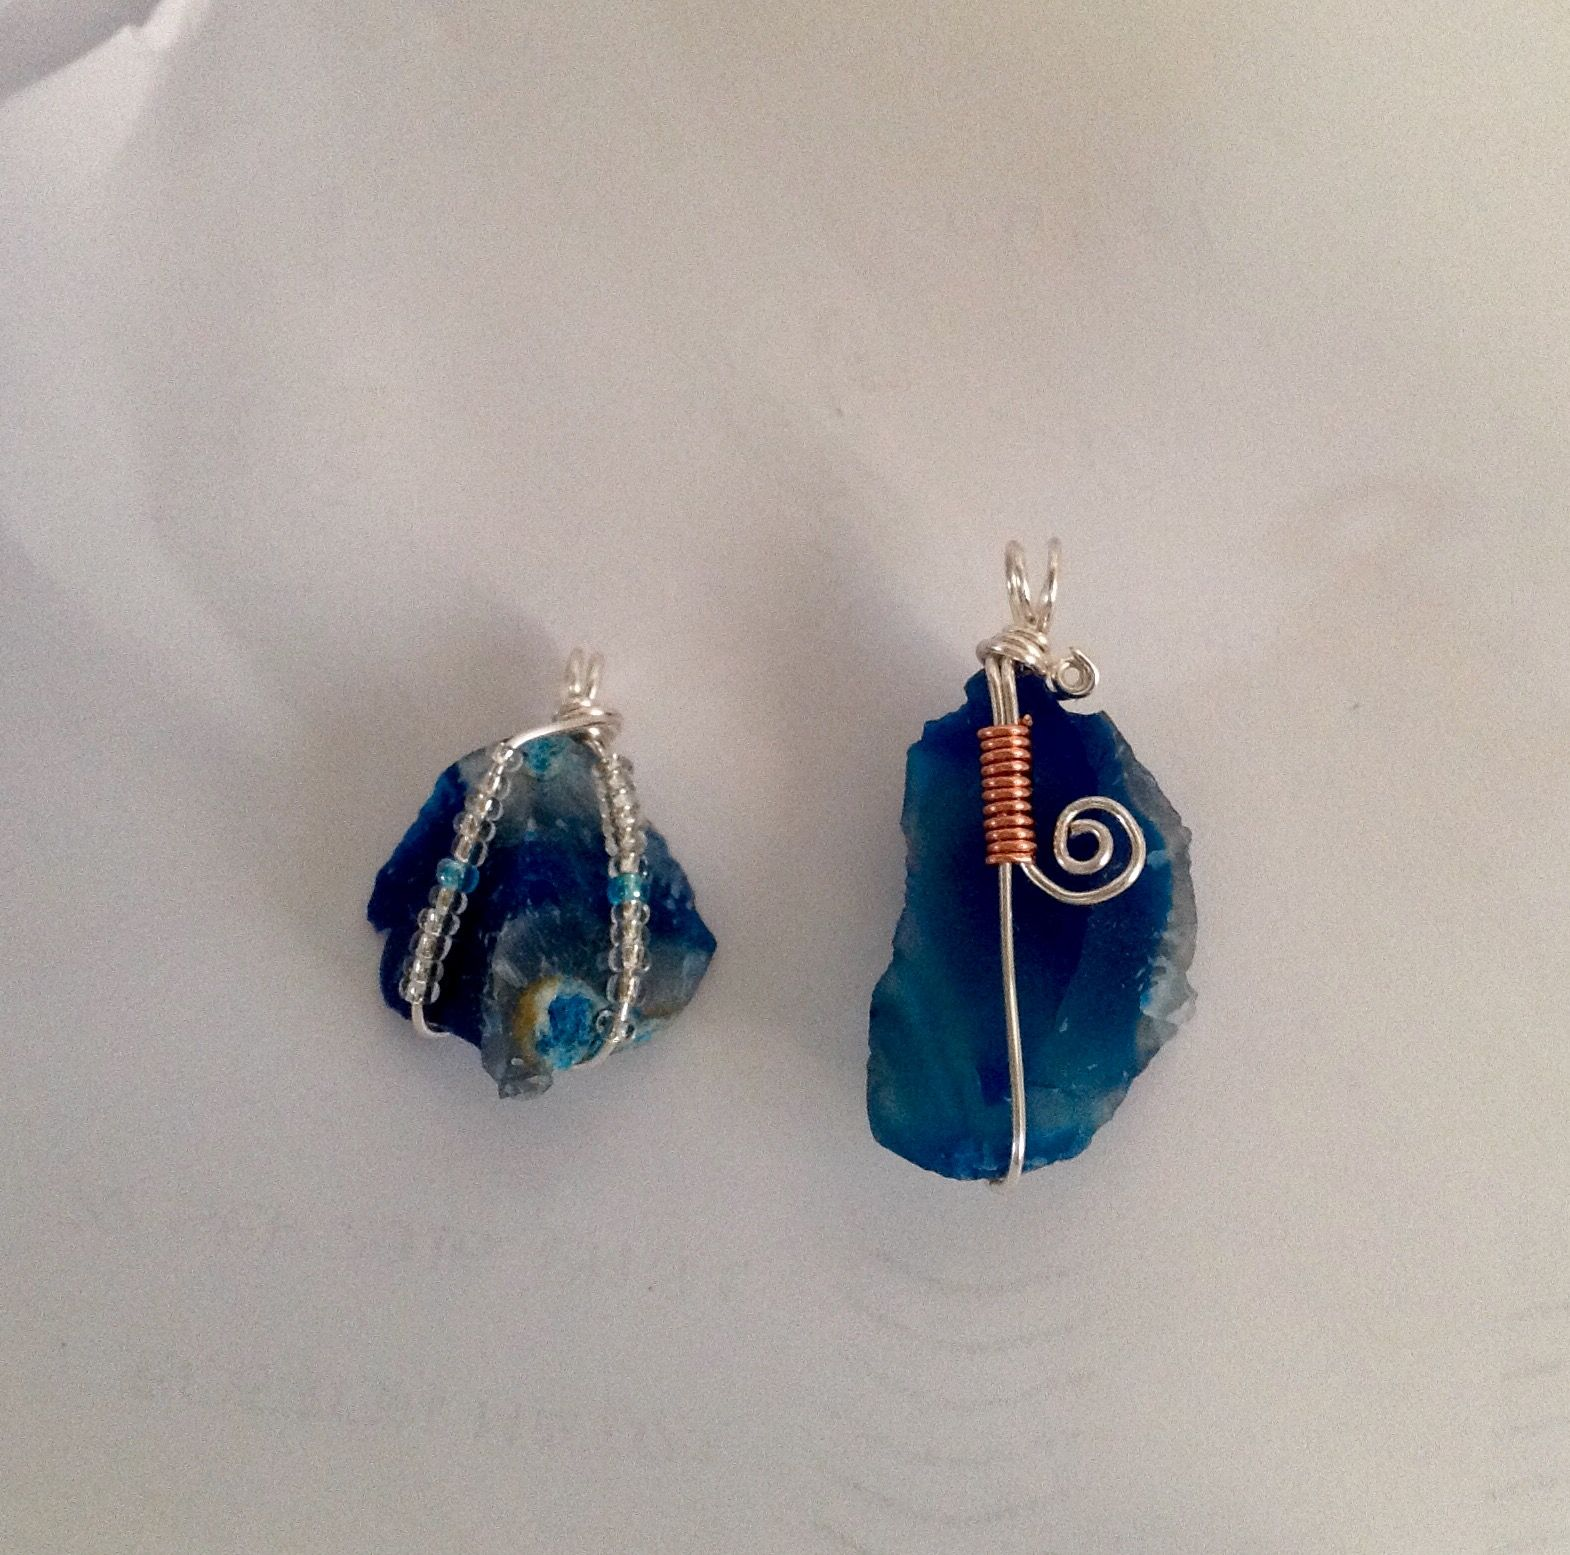 Pin by Georgette Williams-Strom on Wire Wrapped Stones/Crystals ...